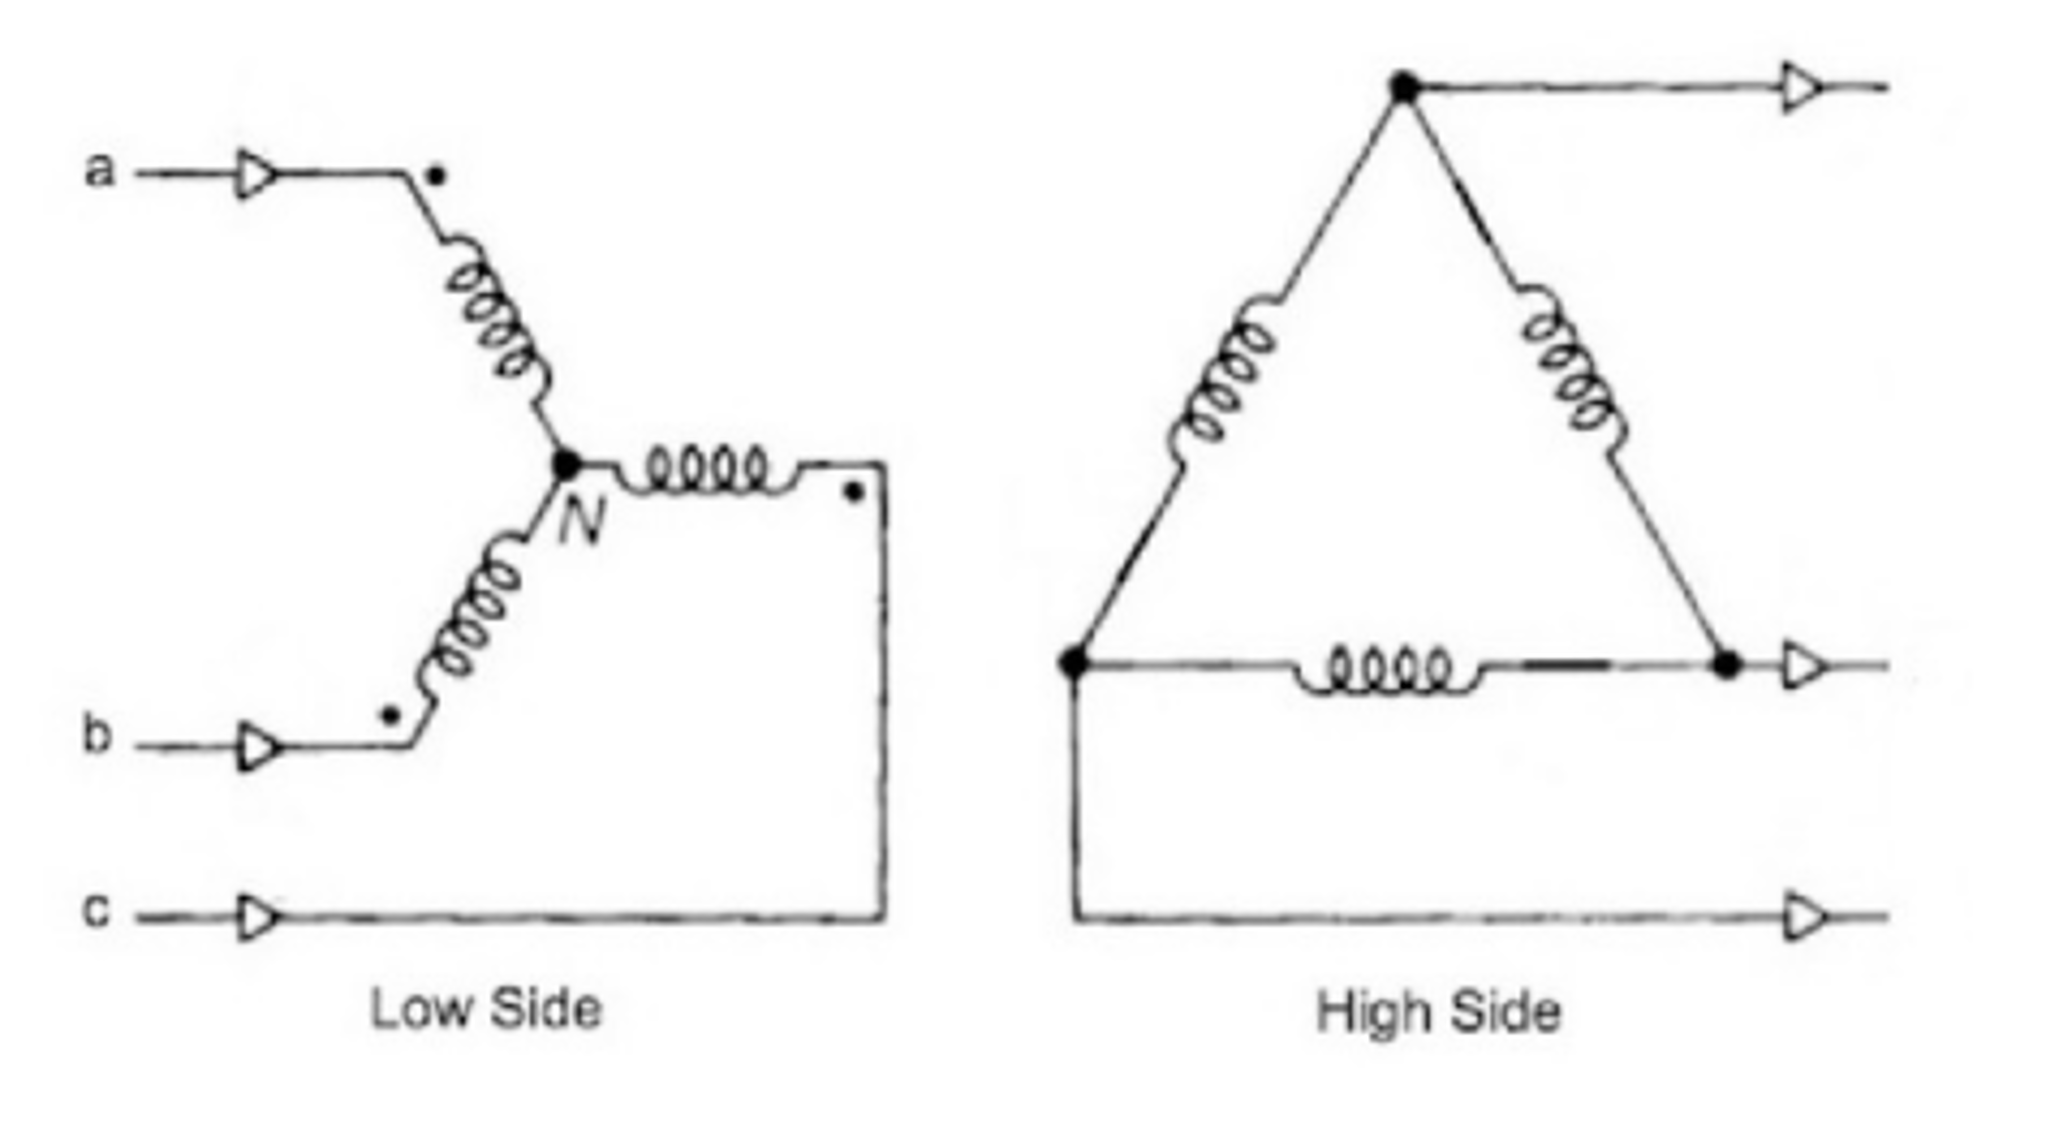 3 phase wye delta wiring diagram solved for the wye delta 3 phase step up transformer syst  wye delta 3 phase step up transformer